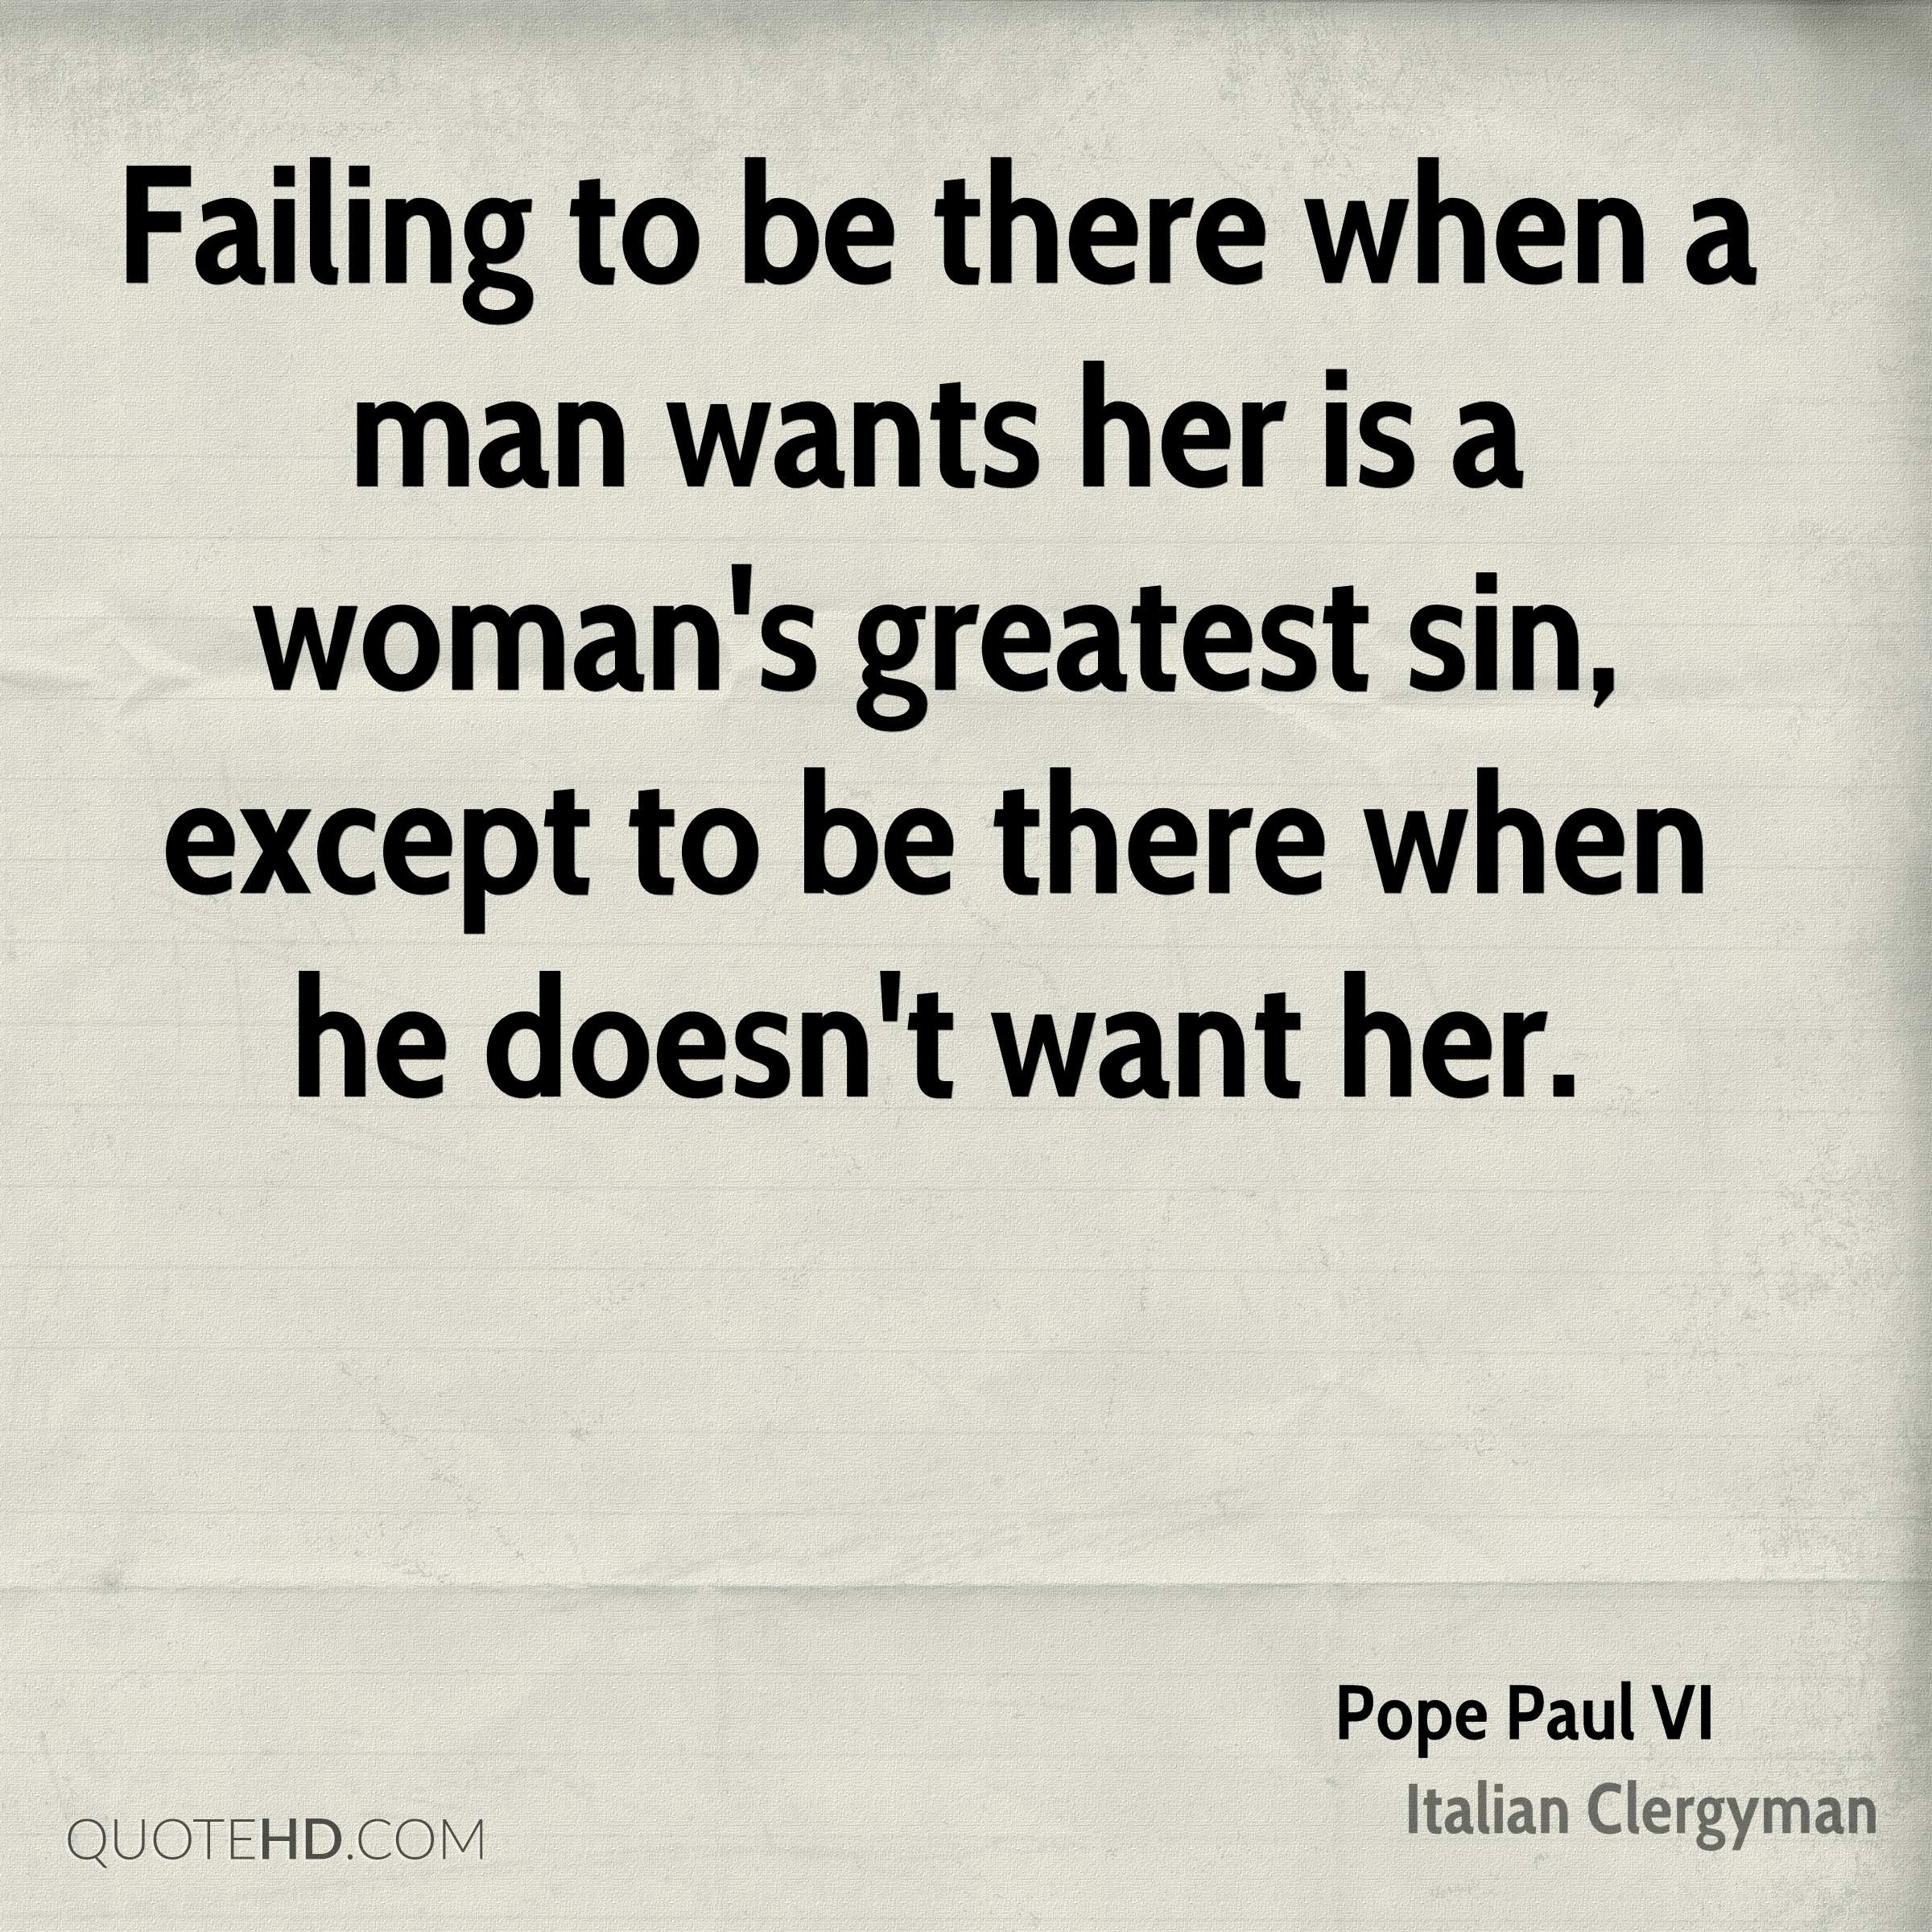 Failing to be there when a man wants her is a woman's greatest sin, except to be there when he doesn't want her.